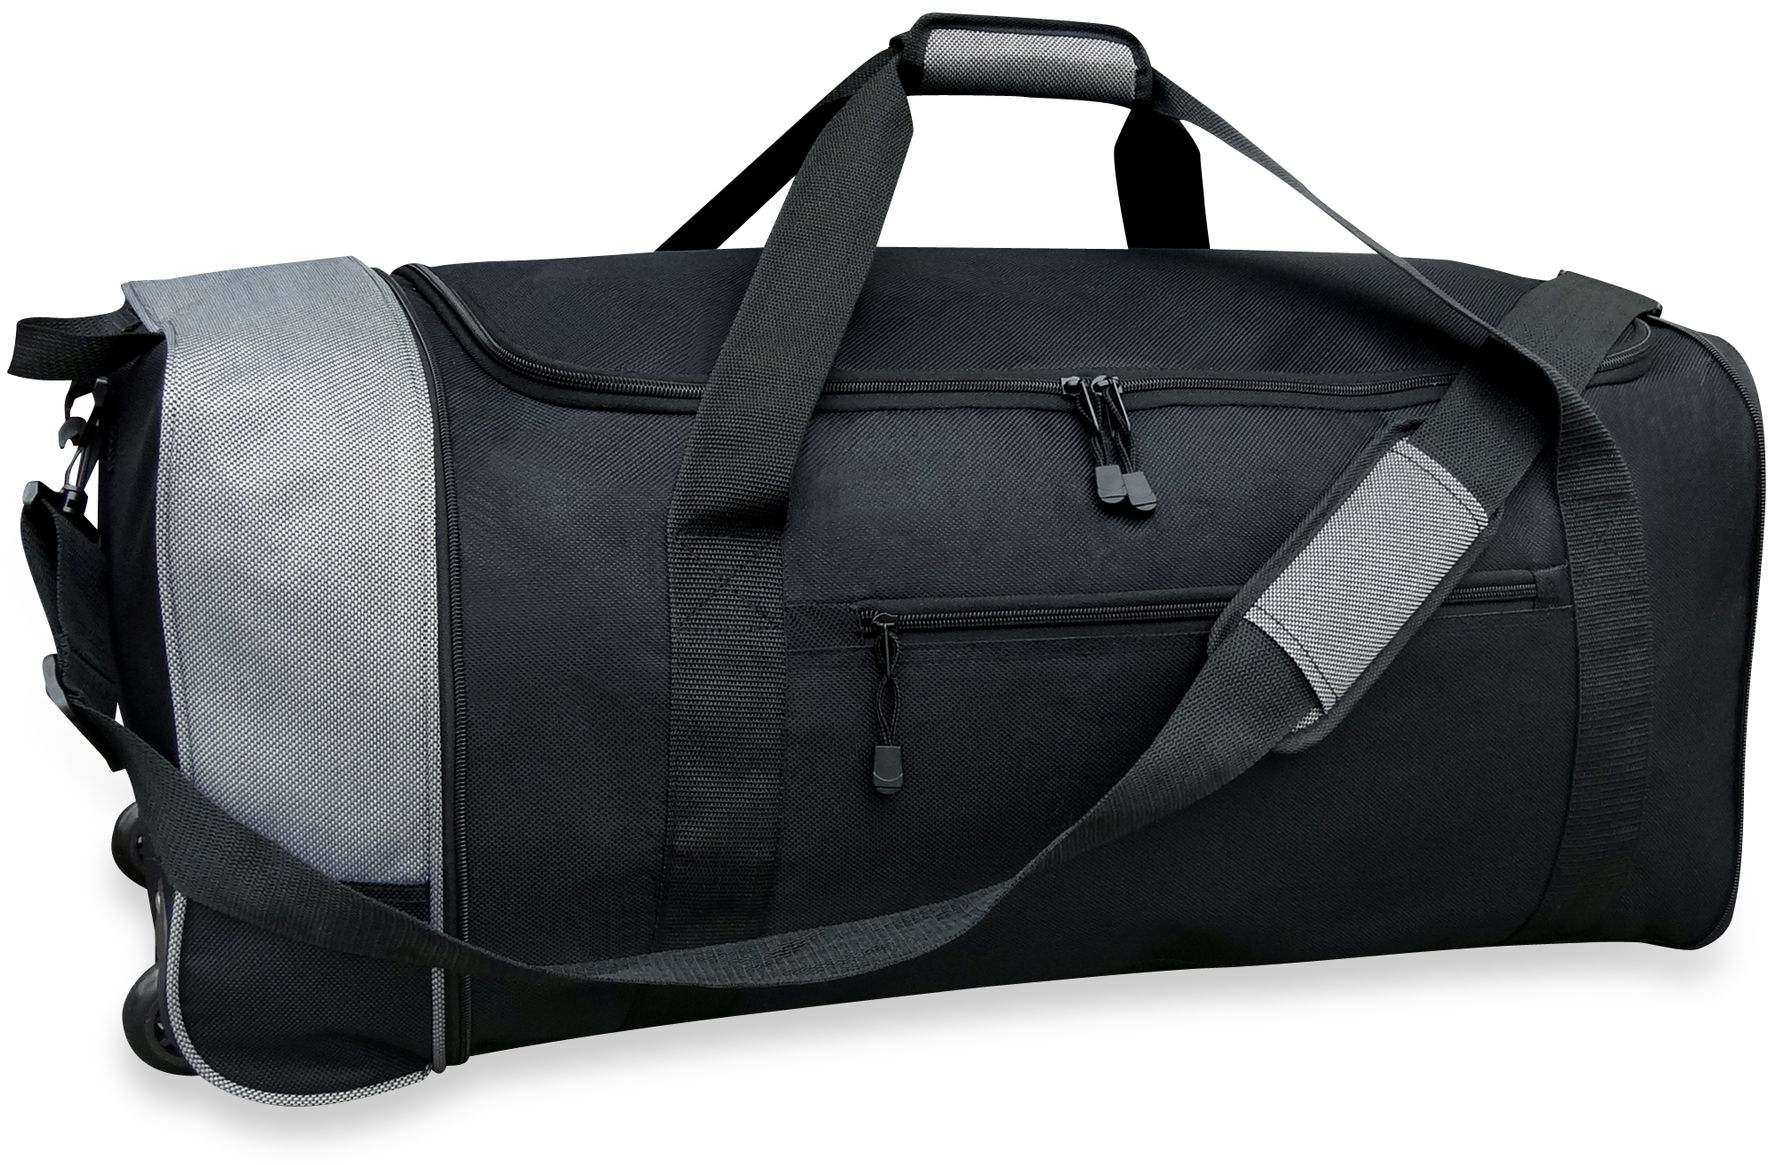 5dbcd8743869 Details about Travelers Club 32-Inch Compactable Rolling Duffle with Side  Pockets